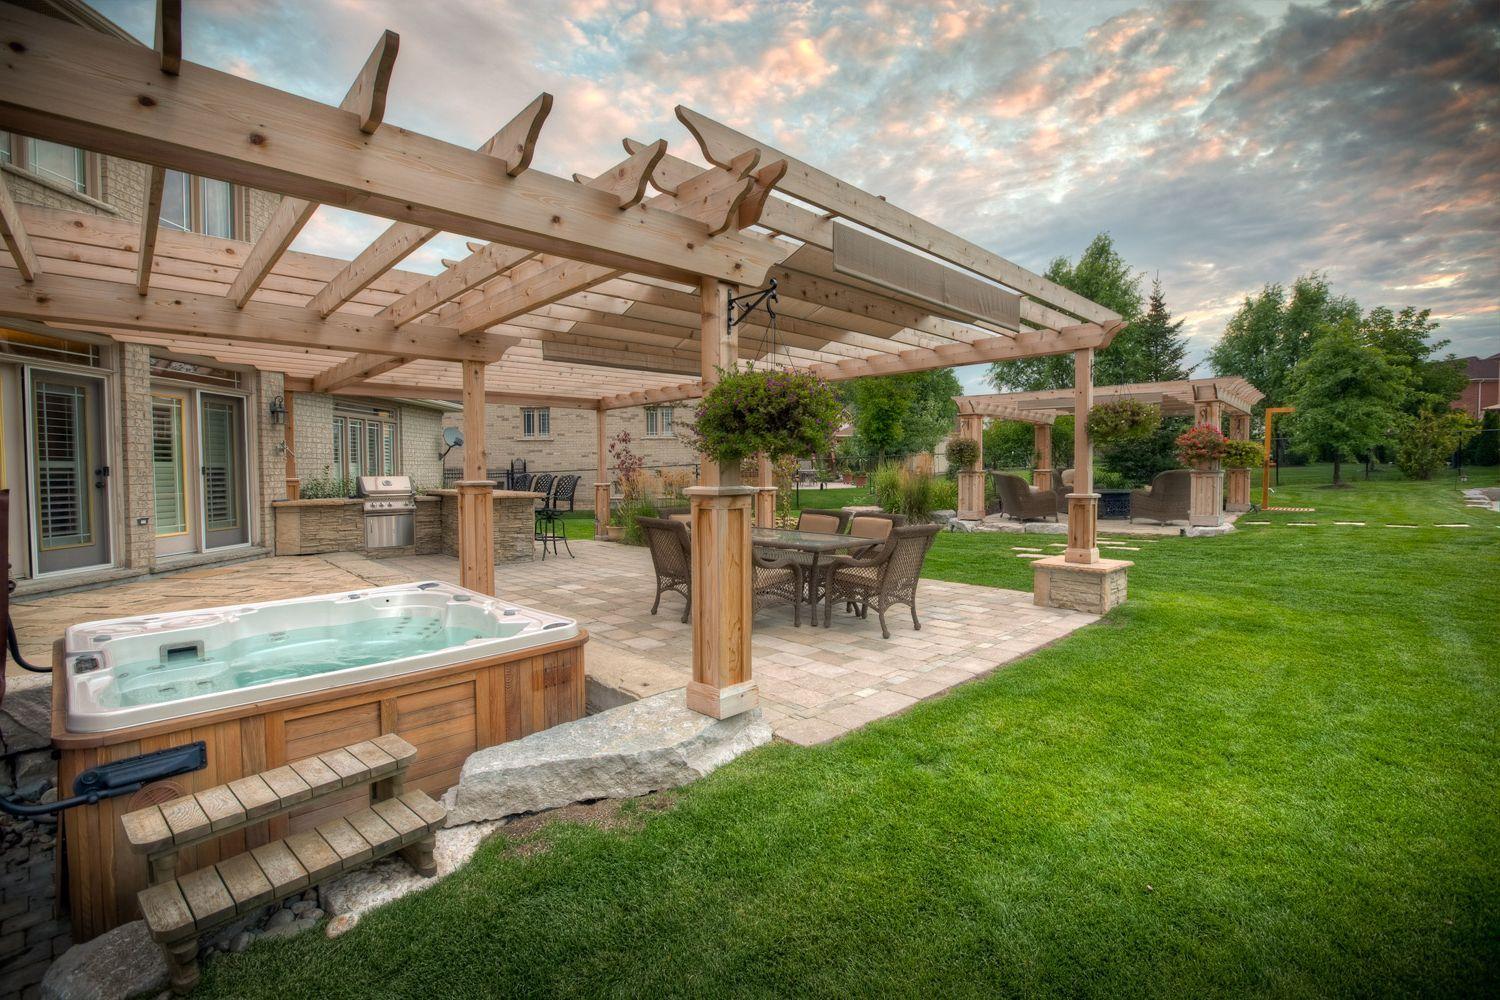 Outdoor backyard deck designs with hot tub ideas deck for Backyard decks